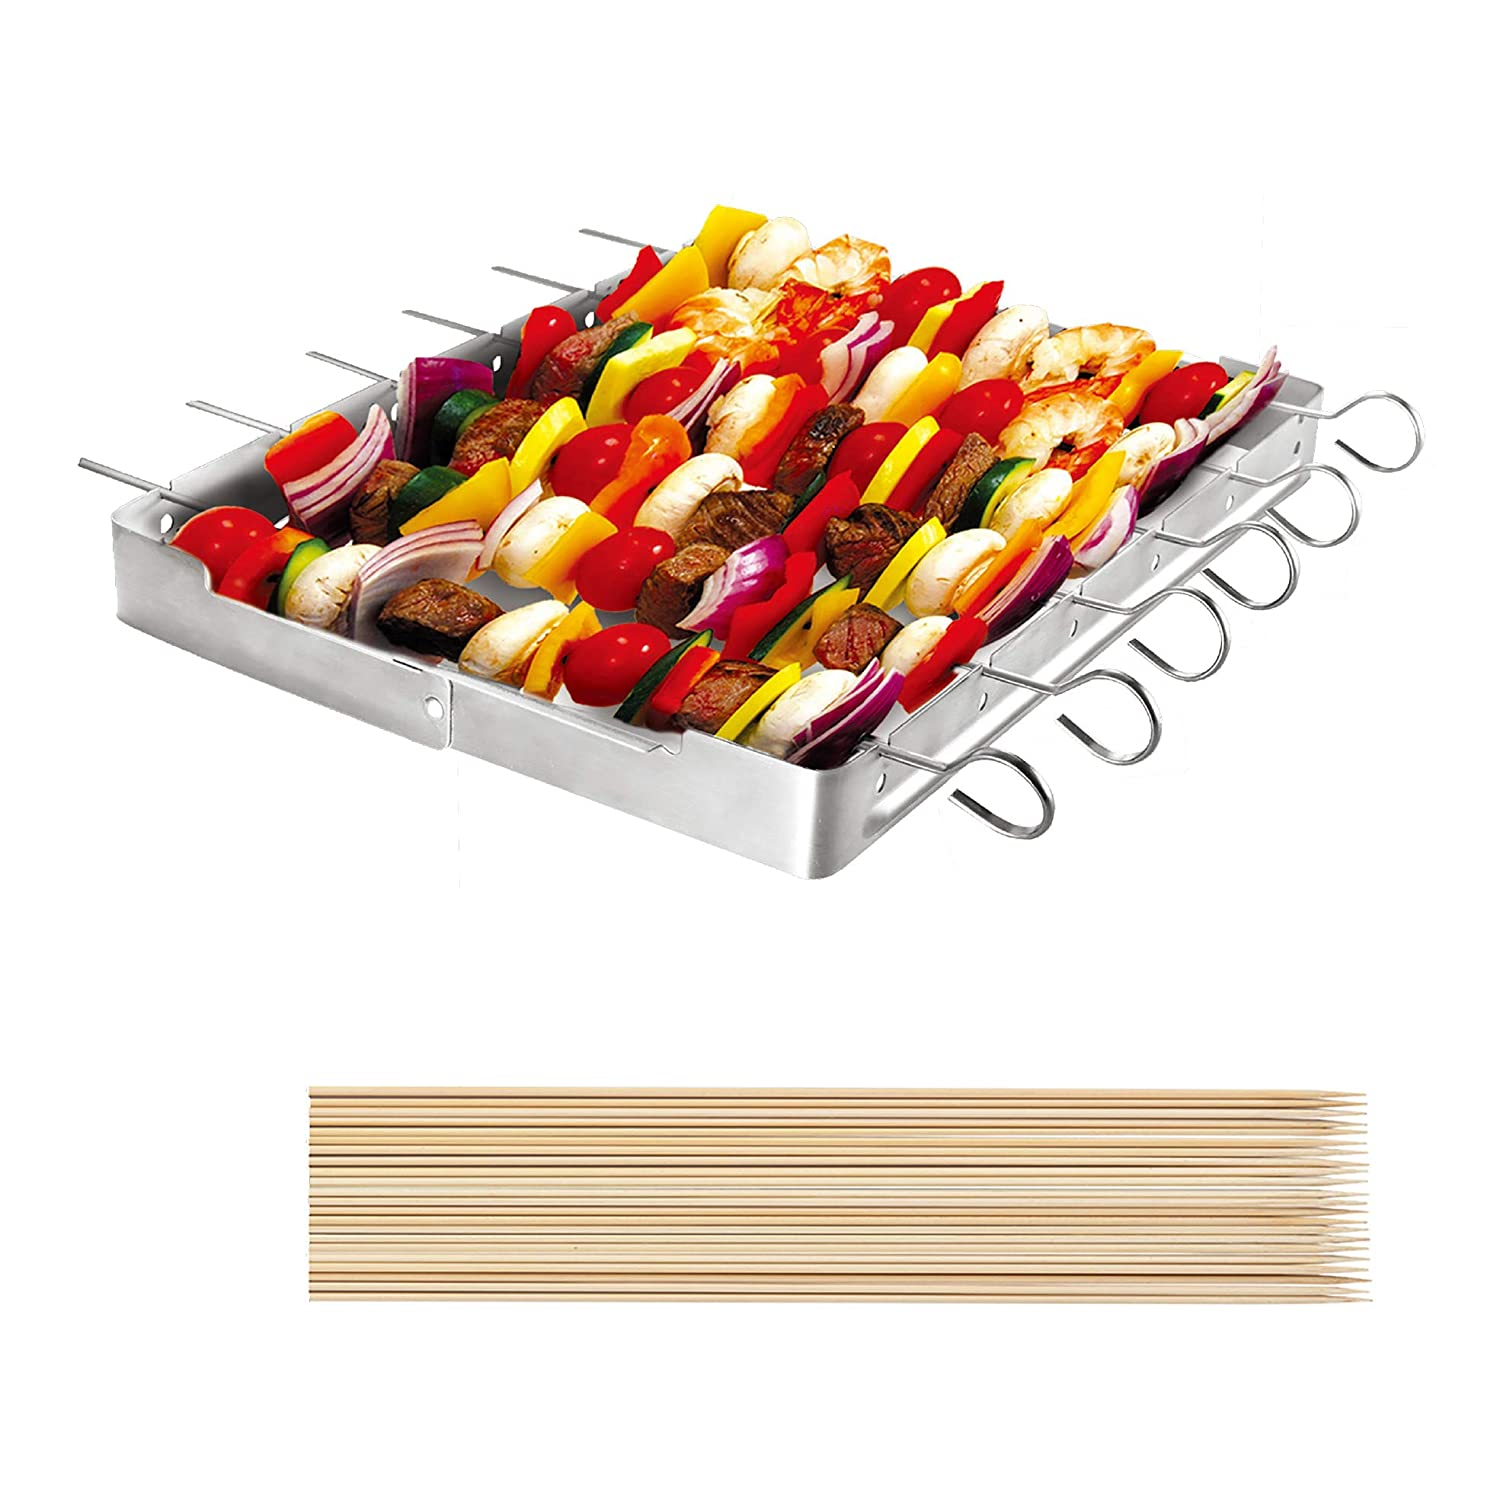 "UNICOOK Heavy Duty Stainless Steel Barbecue Skewer Shish Kabob Set, 6pcs 13""L Skewer and Foldable Grill Rack Set, Durable and Reusable, Bonus of 50pcs 12.5""L Bamboo Skewers for Party and Cookout Homepro Manufacturing SYNCHKG068914"